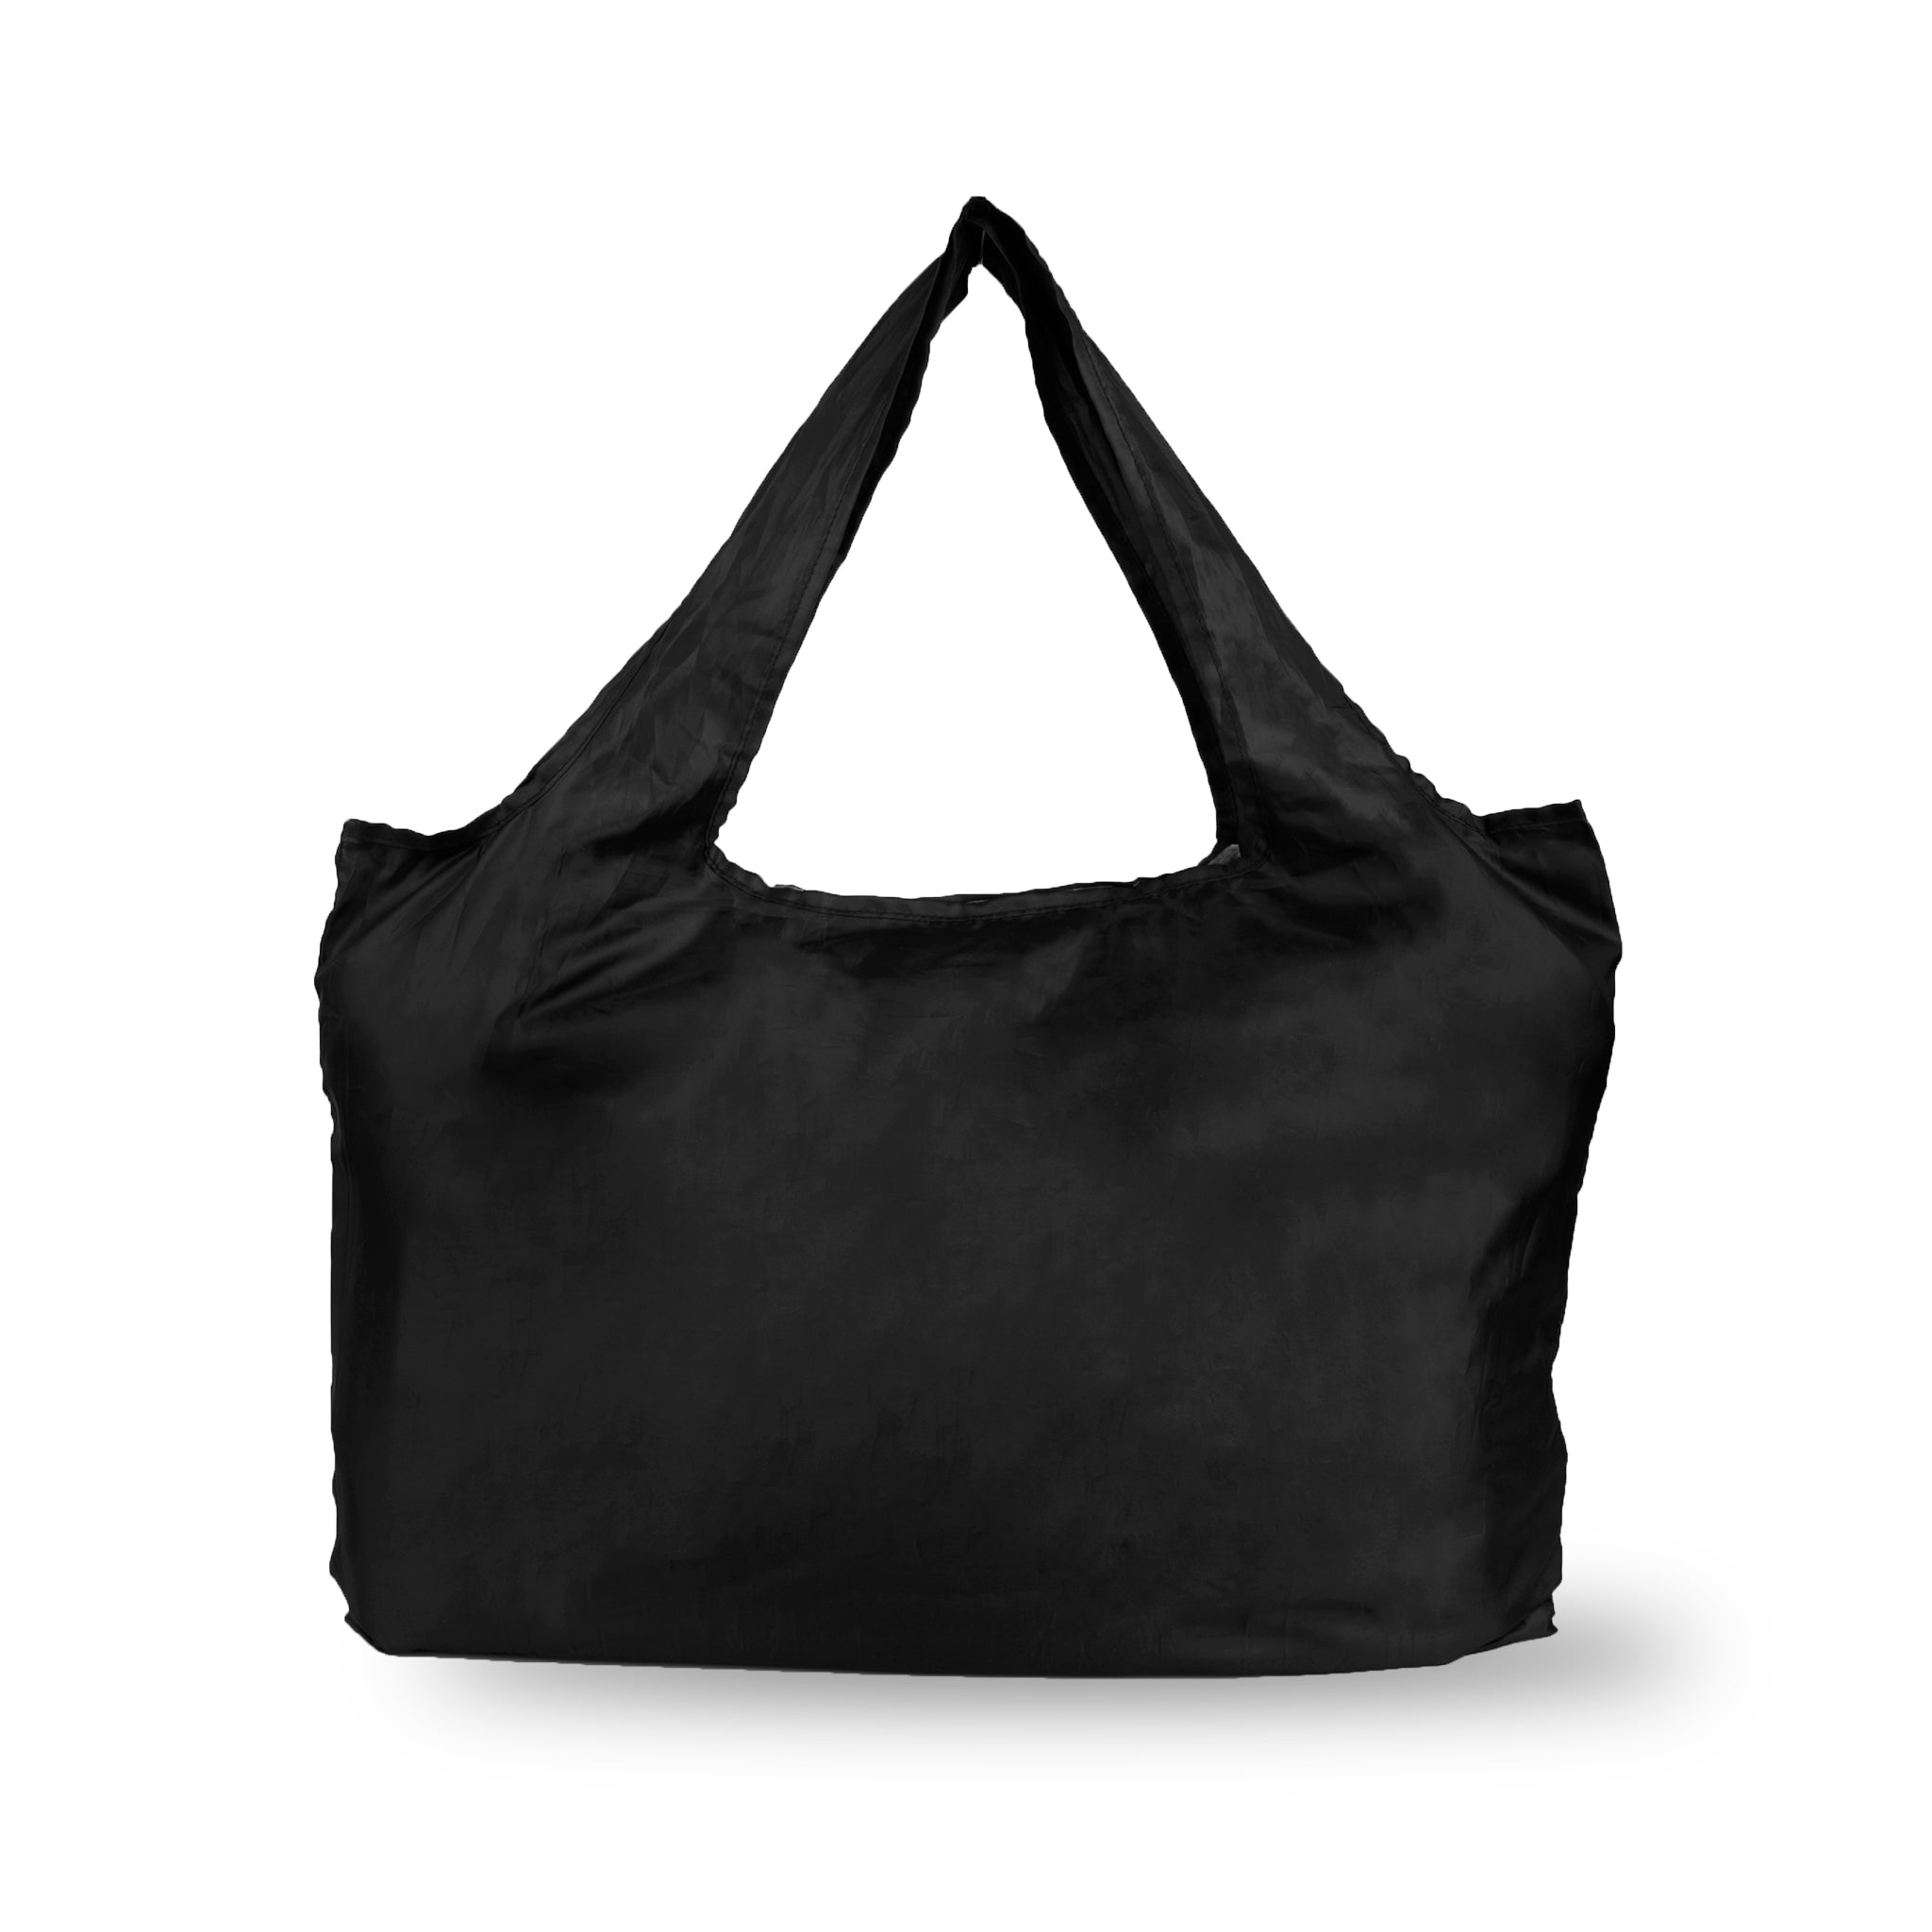 Pocket Shopping Bag Black